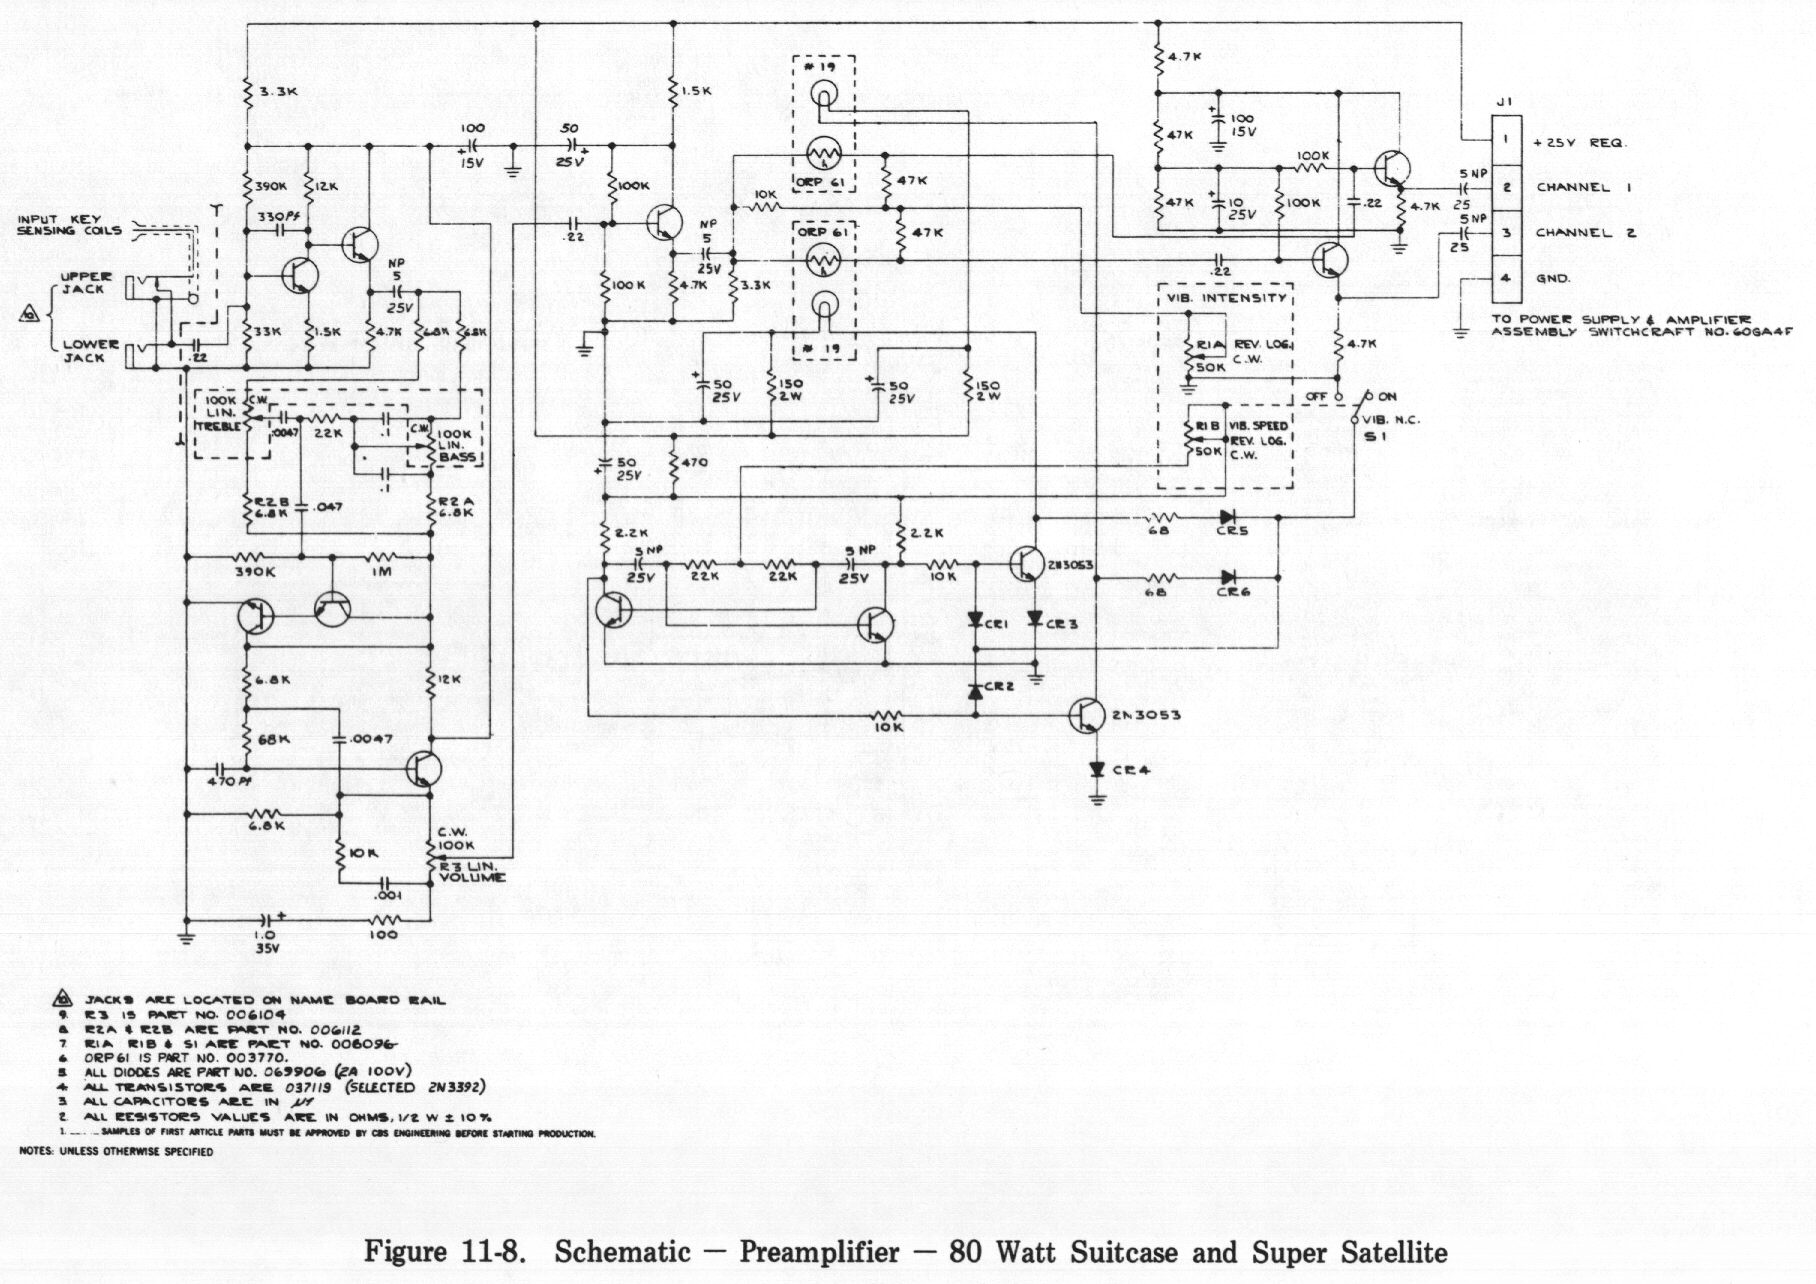 fig11 8 chapter 11 diagrams, schematics and pictorials preamp wiring diagram at bayanpartner.co